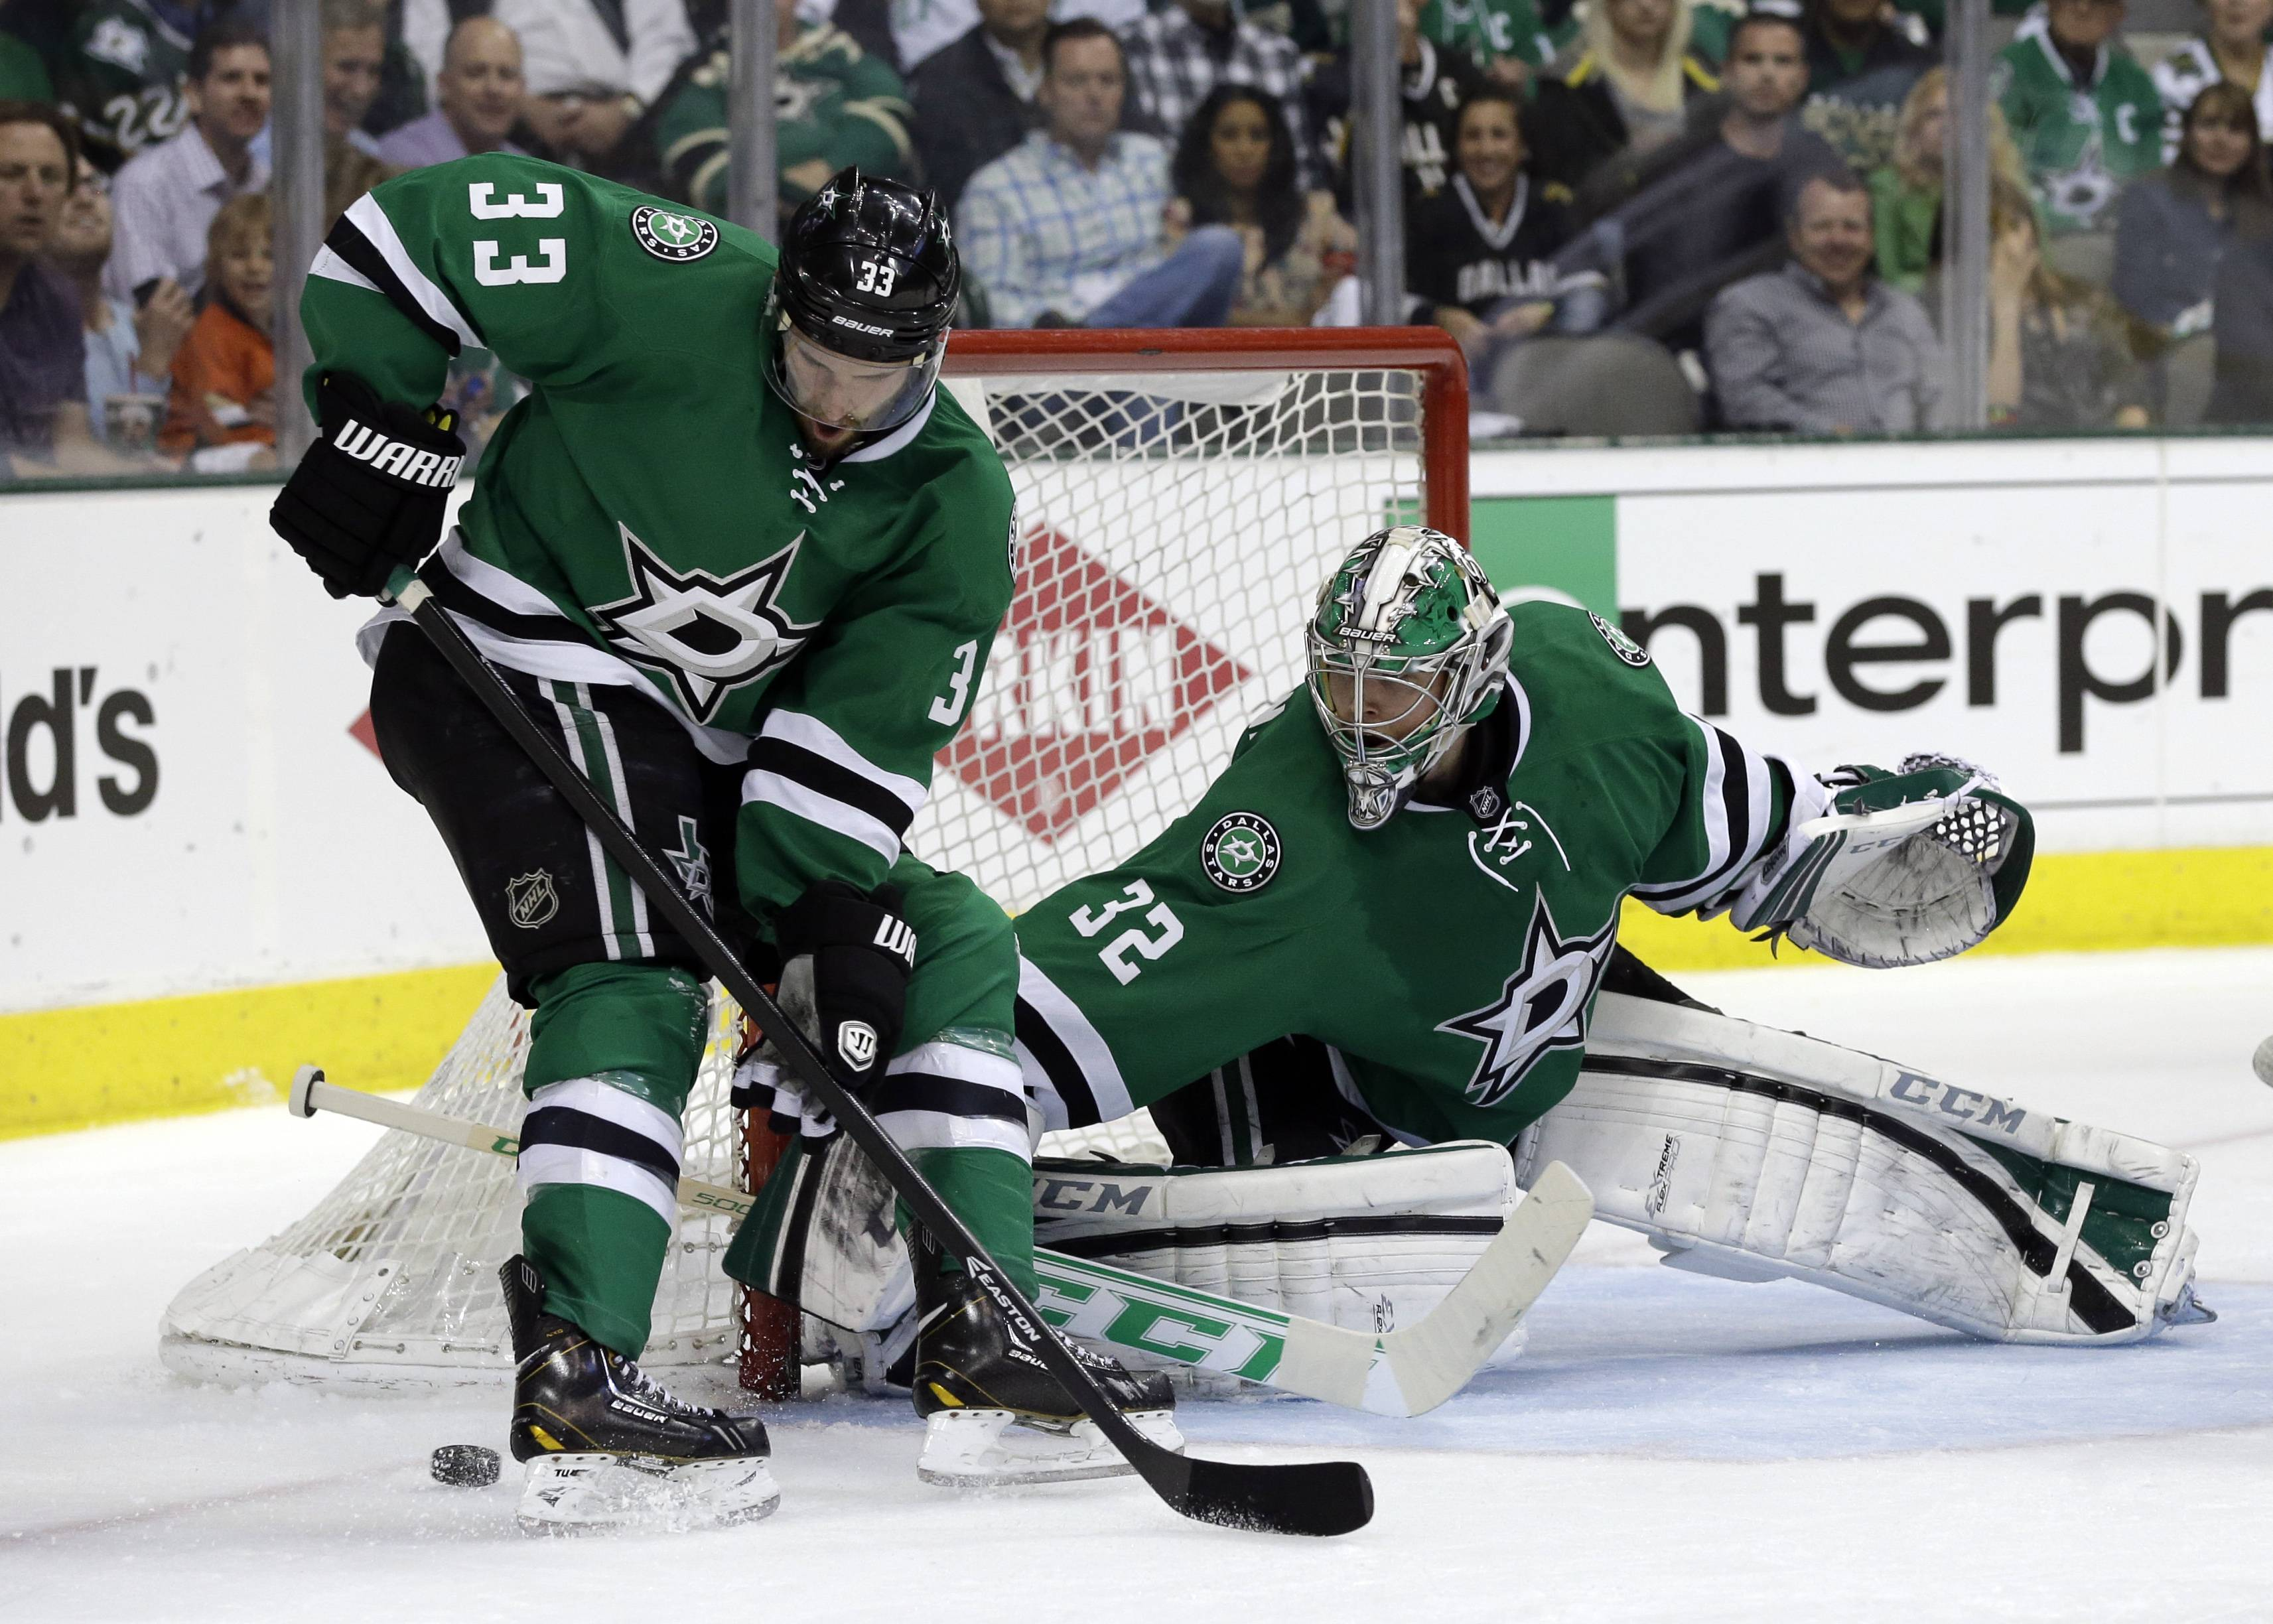 Dallas Stars' Alex Goligoski (33) helps goalie Kari Lehtonen (32) of Finland clear the puck away from the net during the second period of Game 3 of a first-round NHL hockey Stanley Cup playoff series game against the Anaheim Ducks, Monday, April 21, 2014, in Dallas.